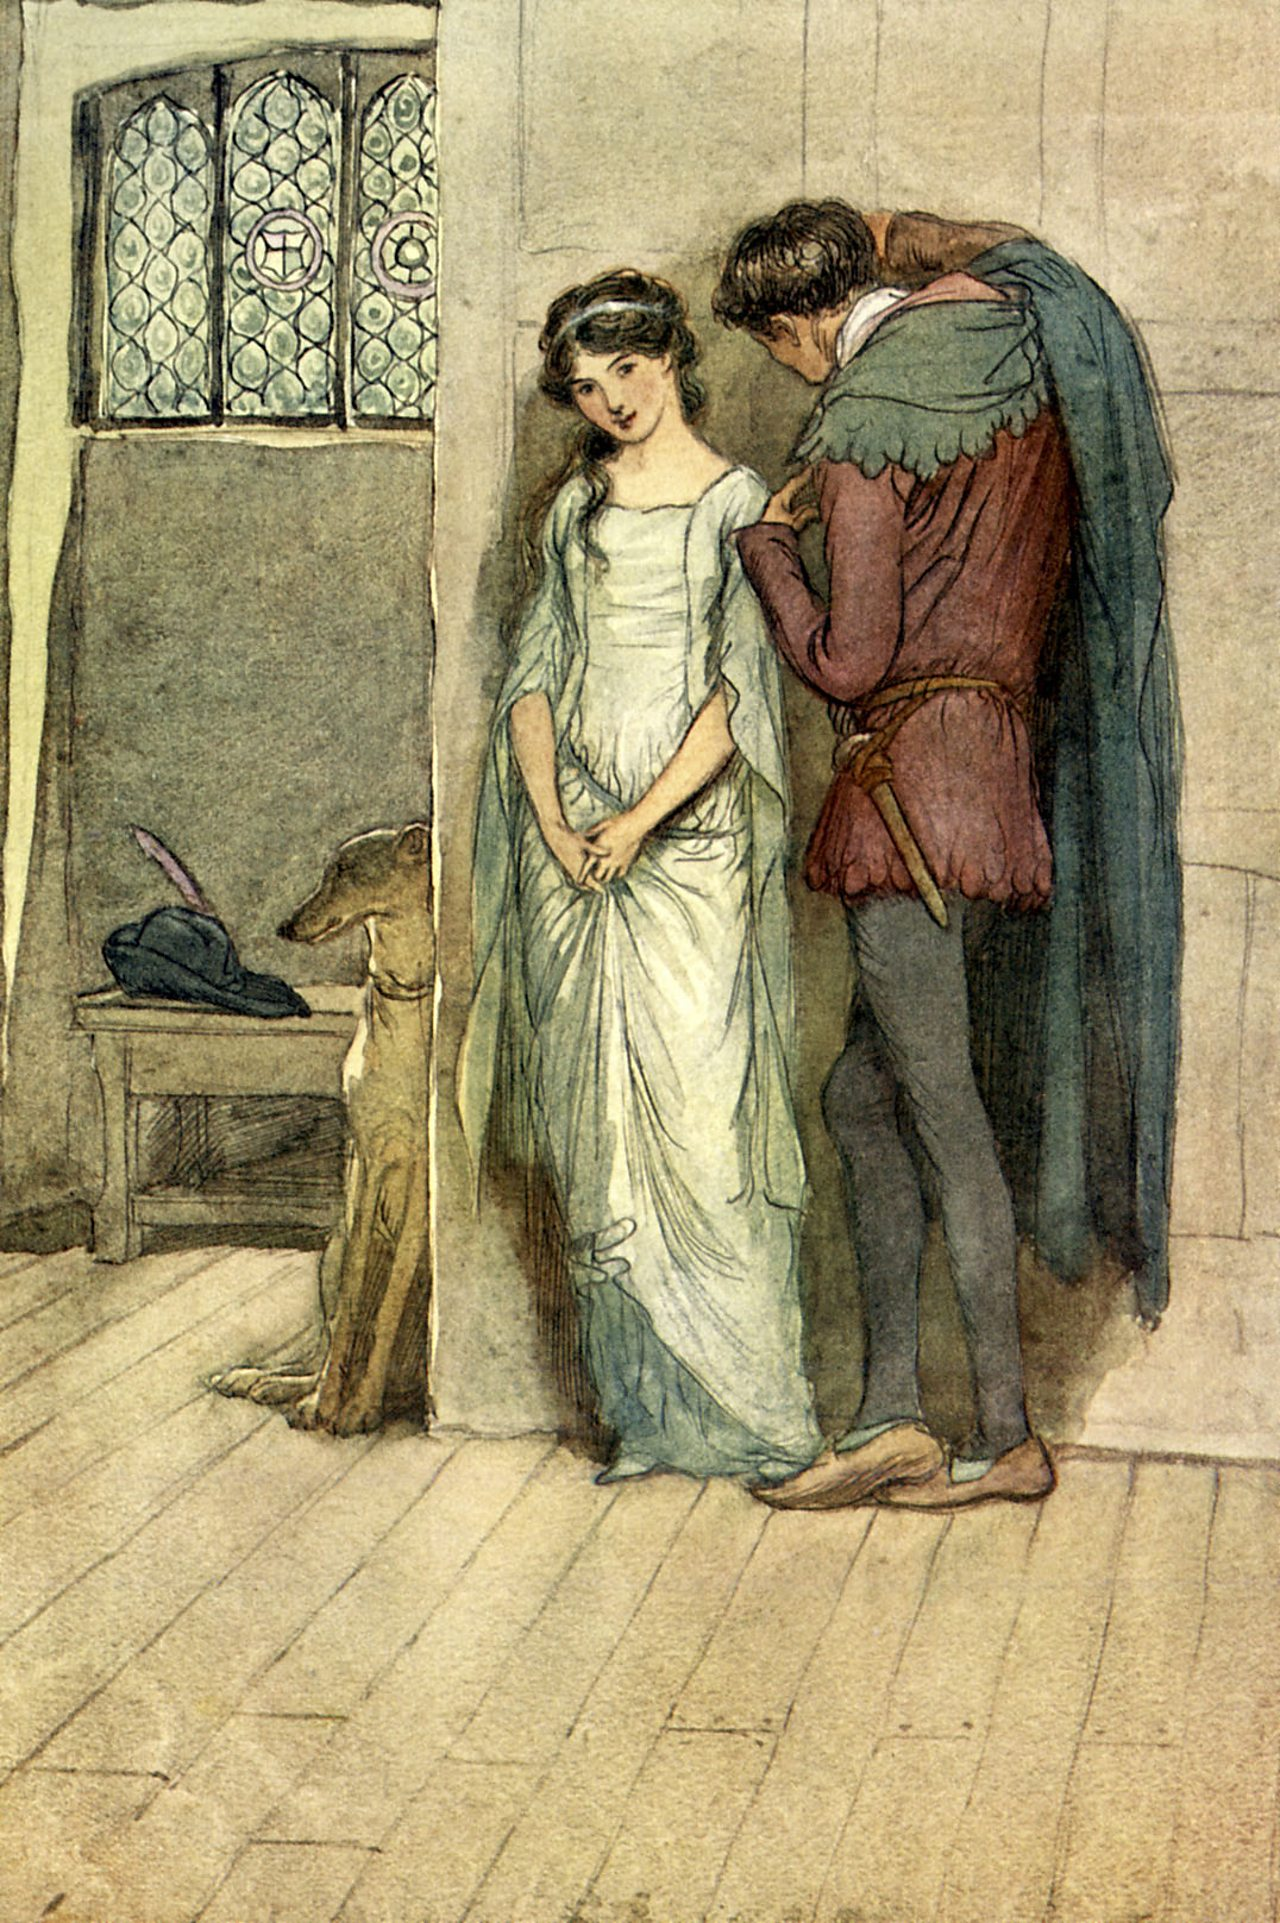 Lovers Fenton and Anne meet in Act 3, Scene 4 of The Merry Wives of Windsor